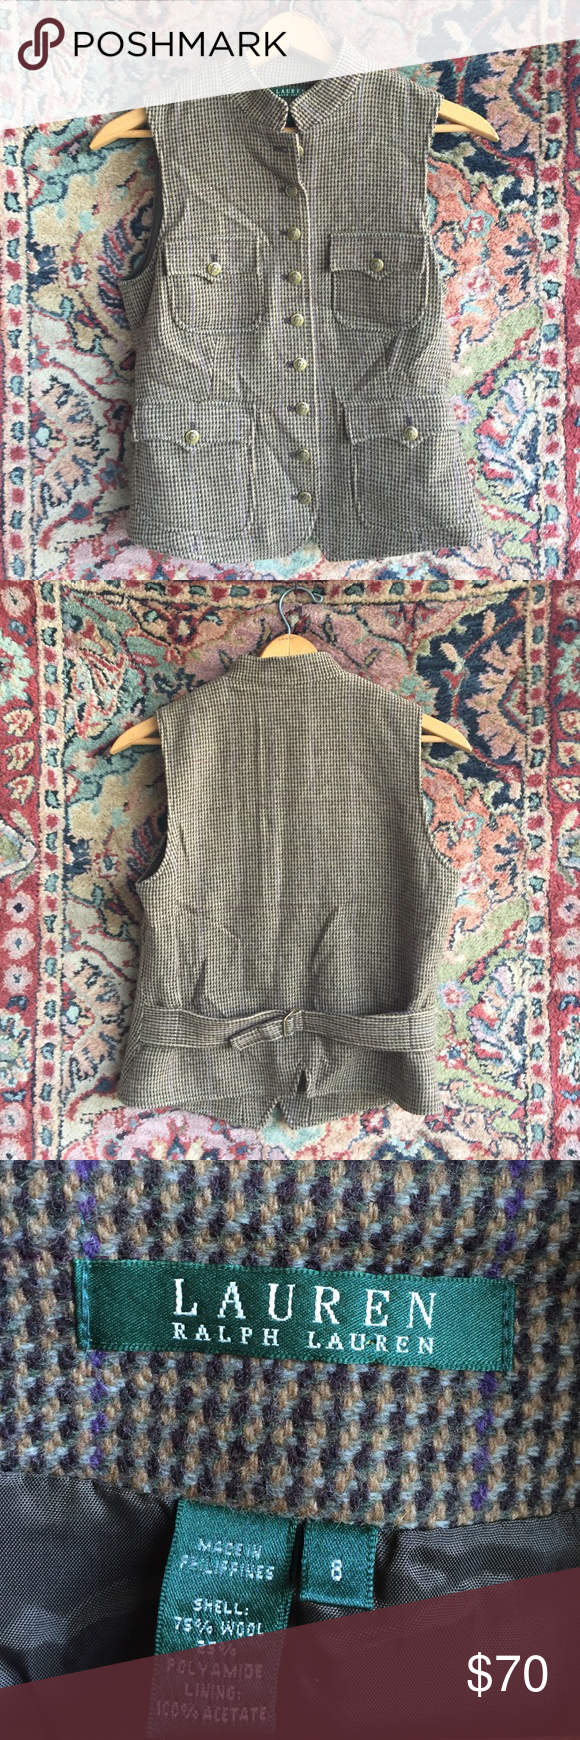 """Lauren Ralph Lauren Vest The perfect layer to pull your outfit together. Beautiful buttons, clasp at back for the perfect fit and the colors and quality you expect fro LRL! In excellent used condition with no issues. 18"""" underarm to underarm and 22"""" L Lauren Ralph Lauren Jackets & Coats Vests"""